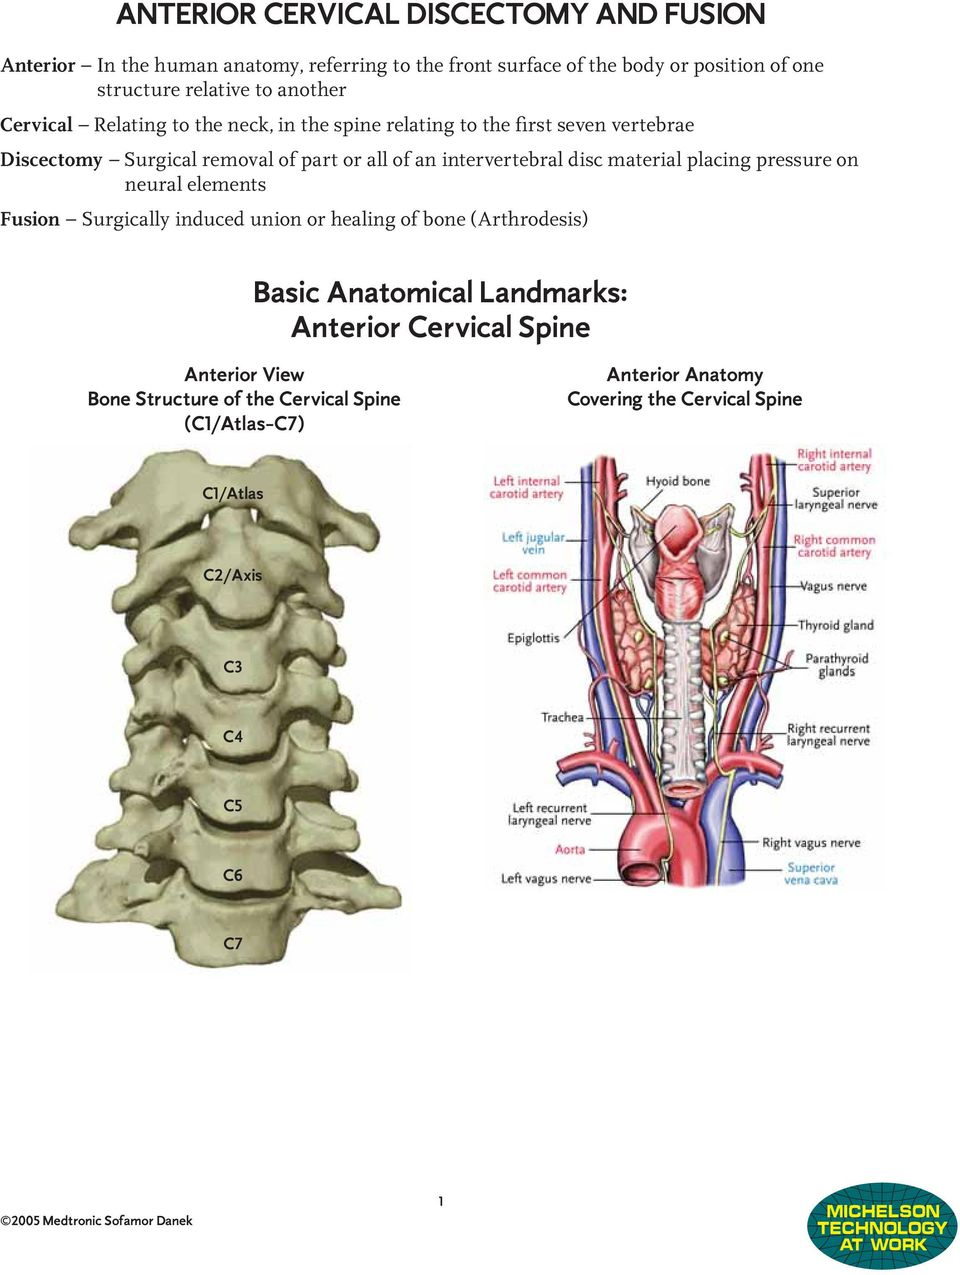 Anterior Cervical Discectomy And Fusion Basic Anatomical Landmarks